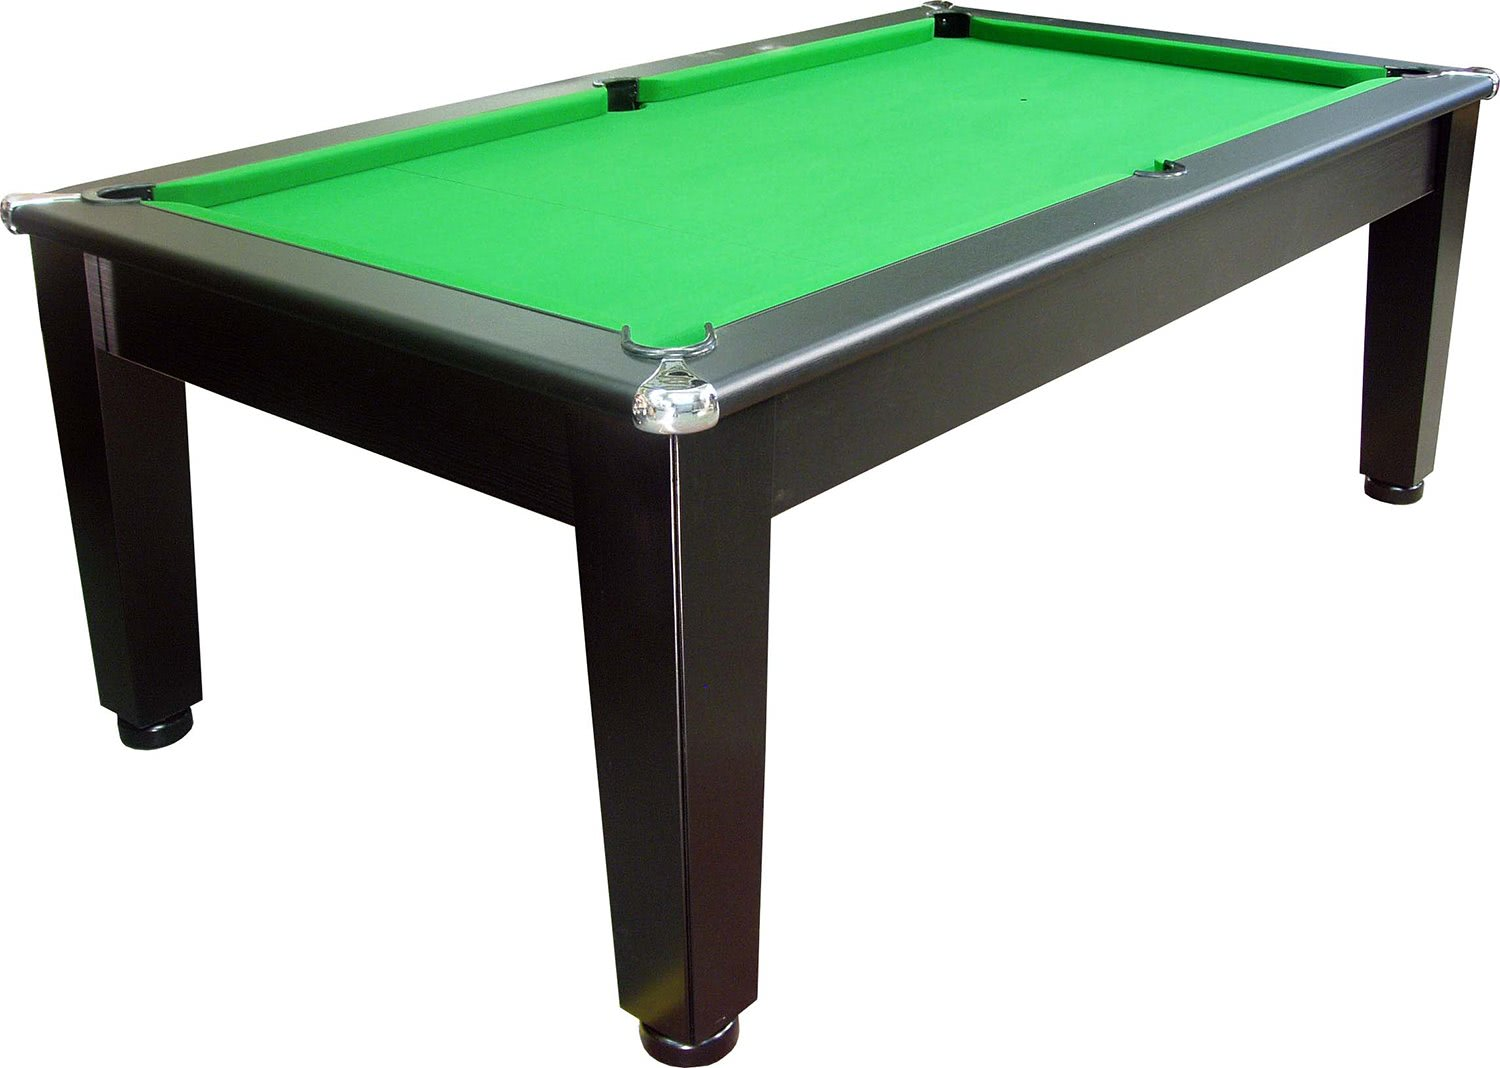 Naples pool dining table 6 ft 7 ft liberty games Pool dining table